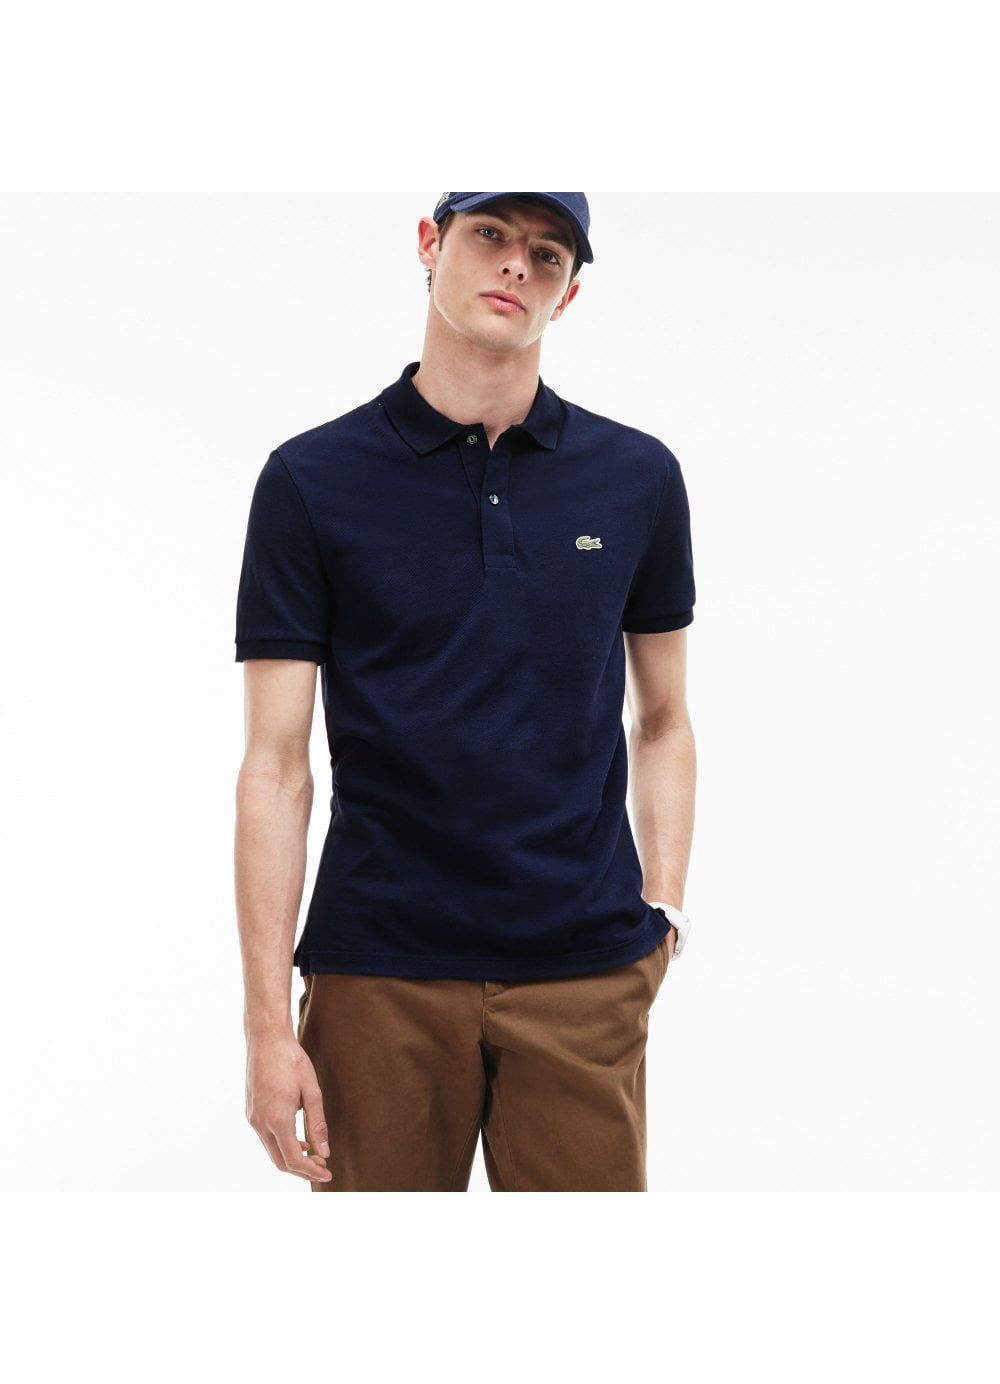 a43a4e037 Mens Lacoste Short Sleeved Slim Fit Polo Shirt Navy - Time Clothing